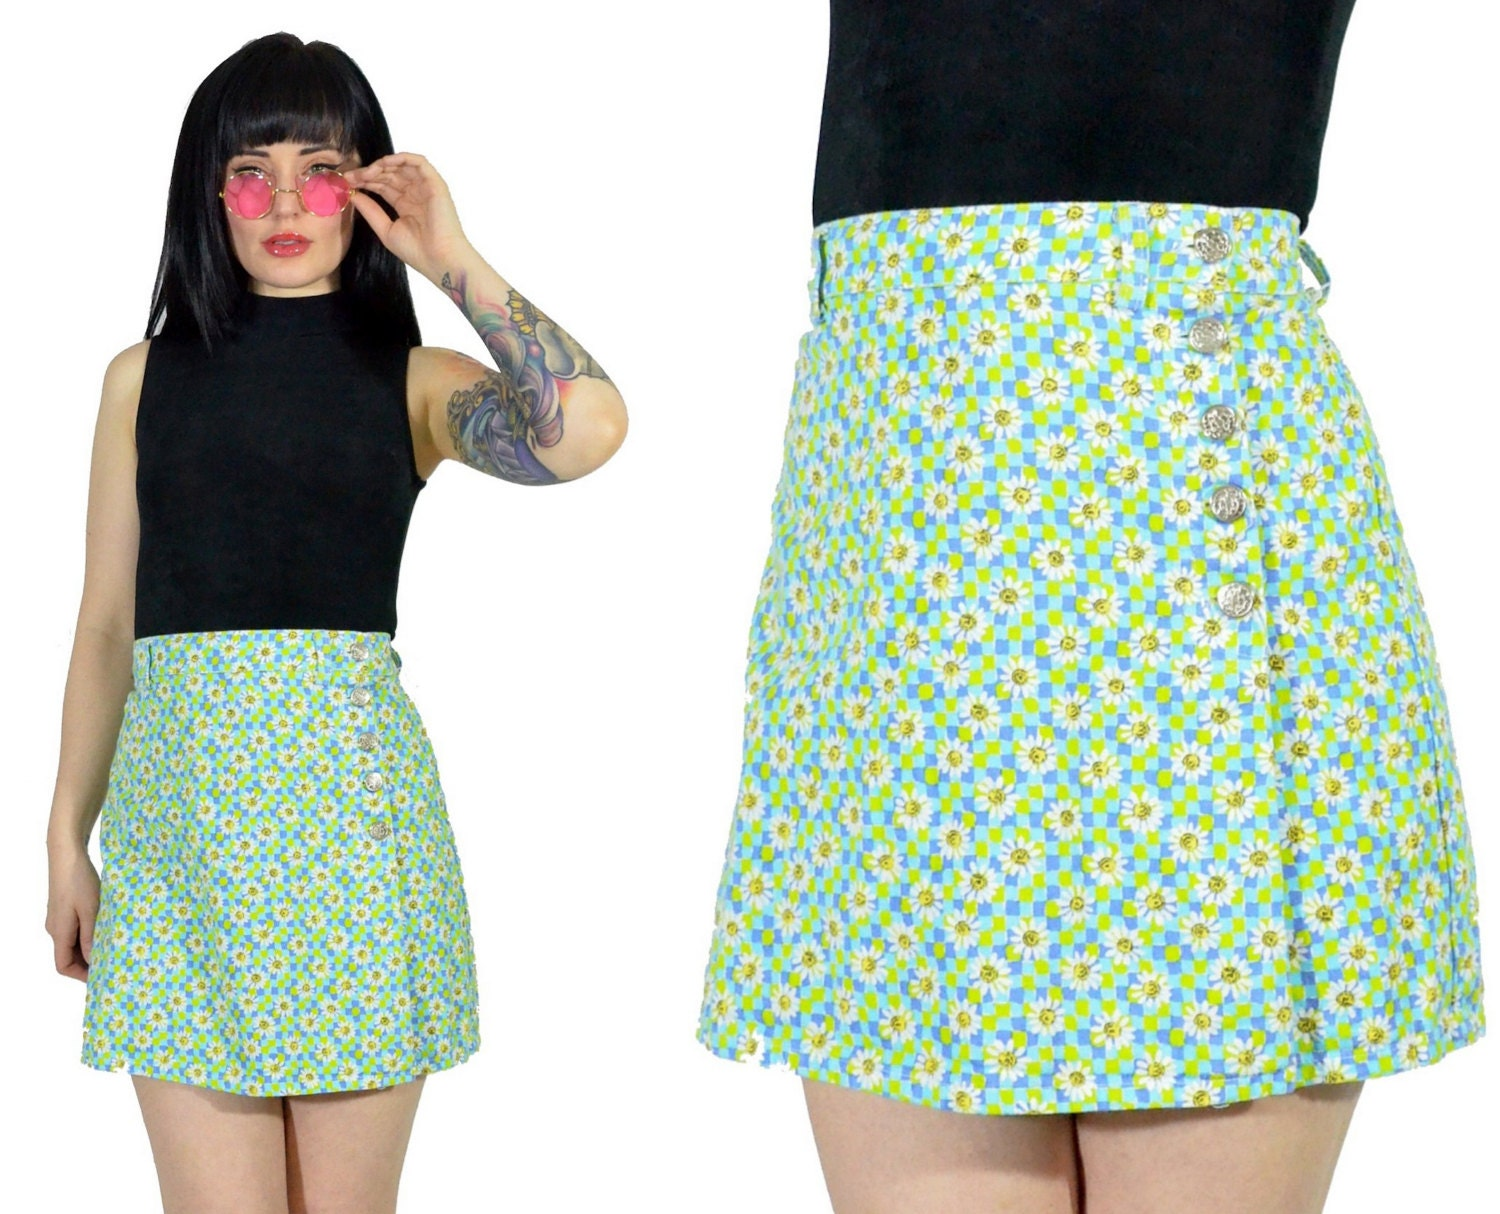 vintage 90s daisy SKORT floral MOD mini skirt shorts 90s does